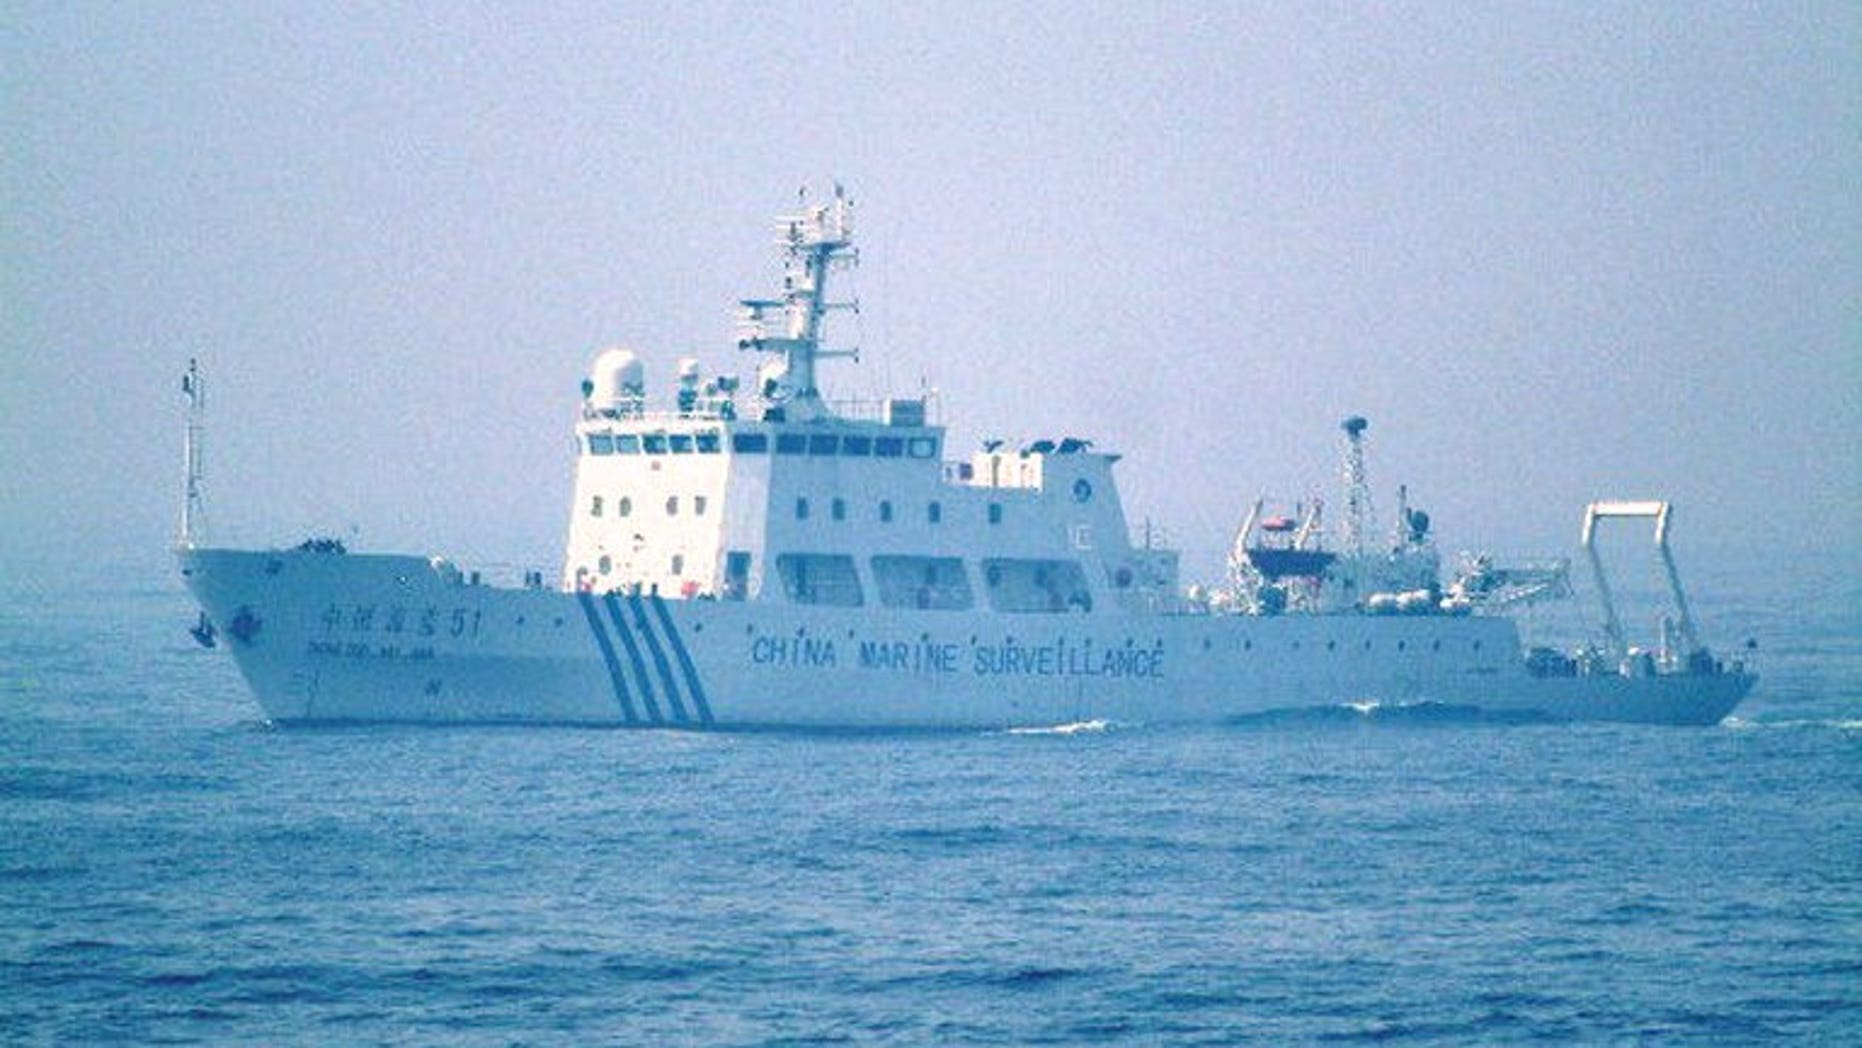 A Chinese marine surveillance ship photographed by the Japanese Coastguard in the East China Sea on May 4, 2010.